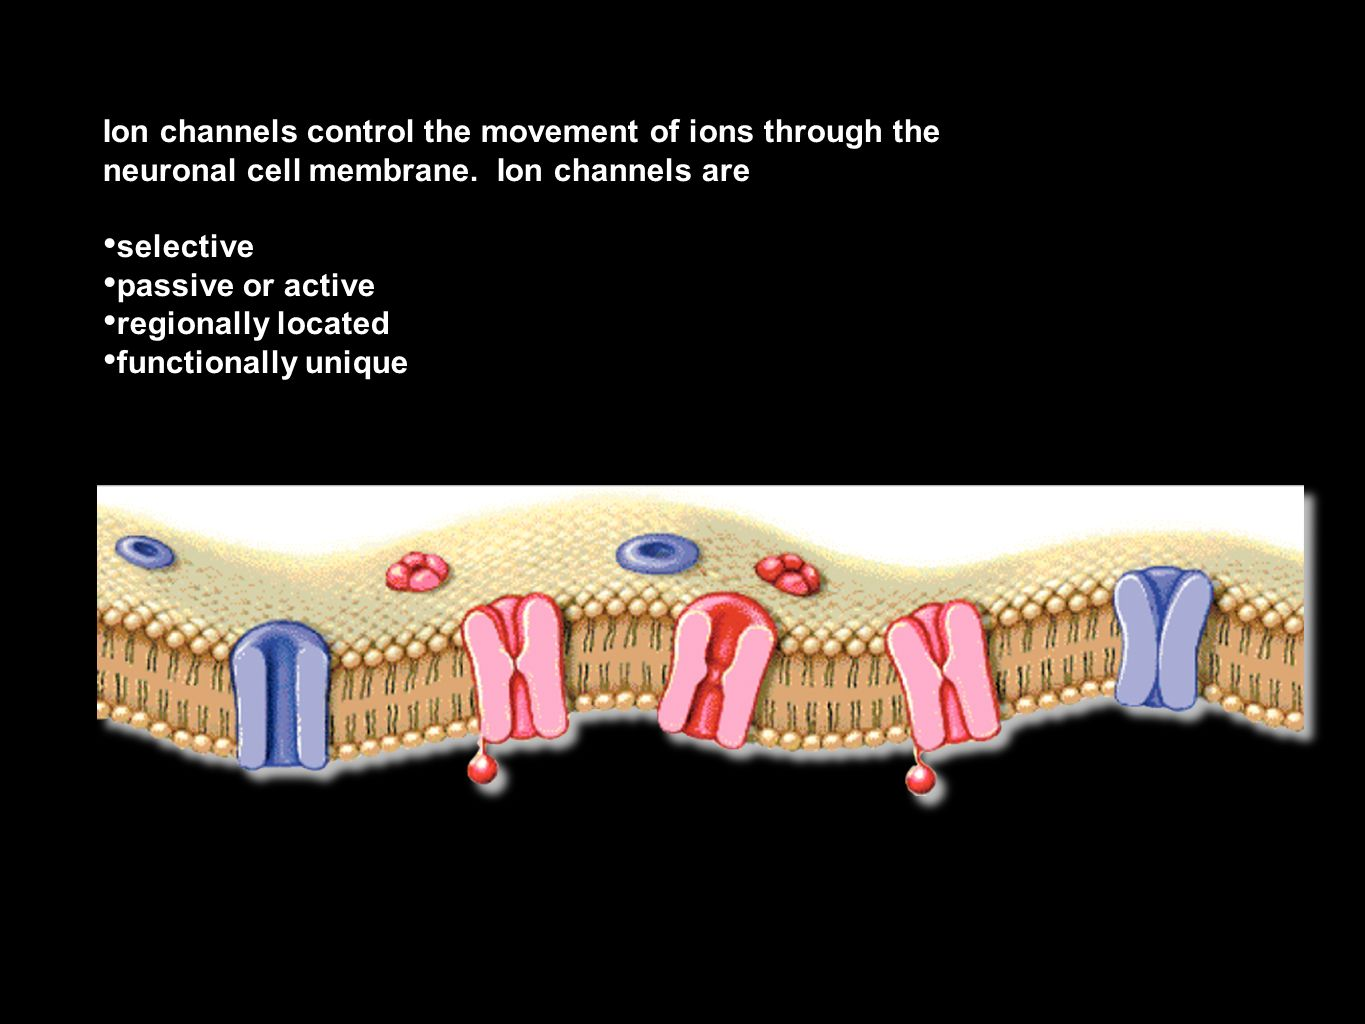 Ion channels control the movement of ions through the neuronal cell membrane. Ion channels are